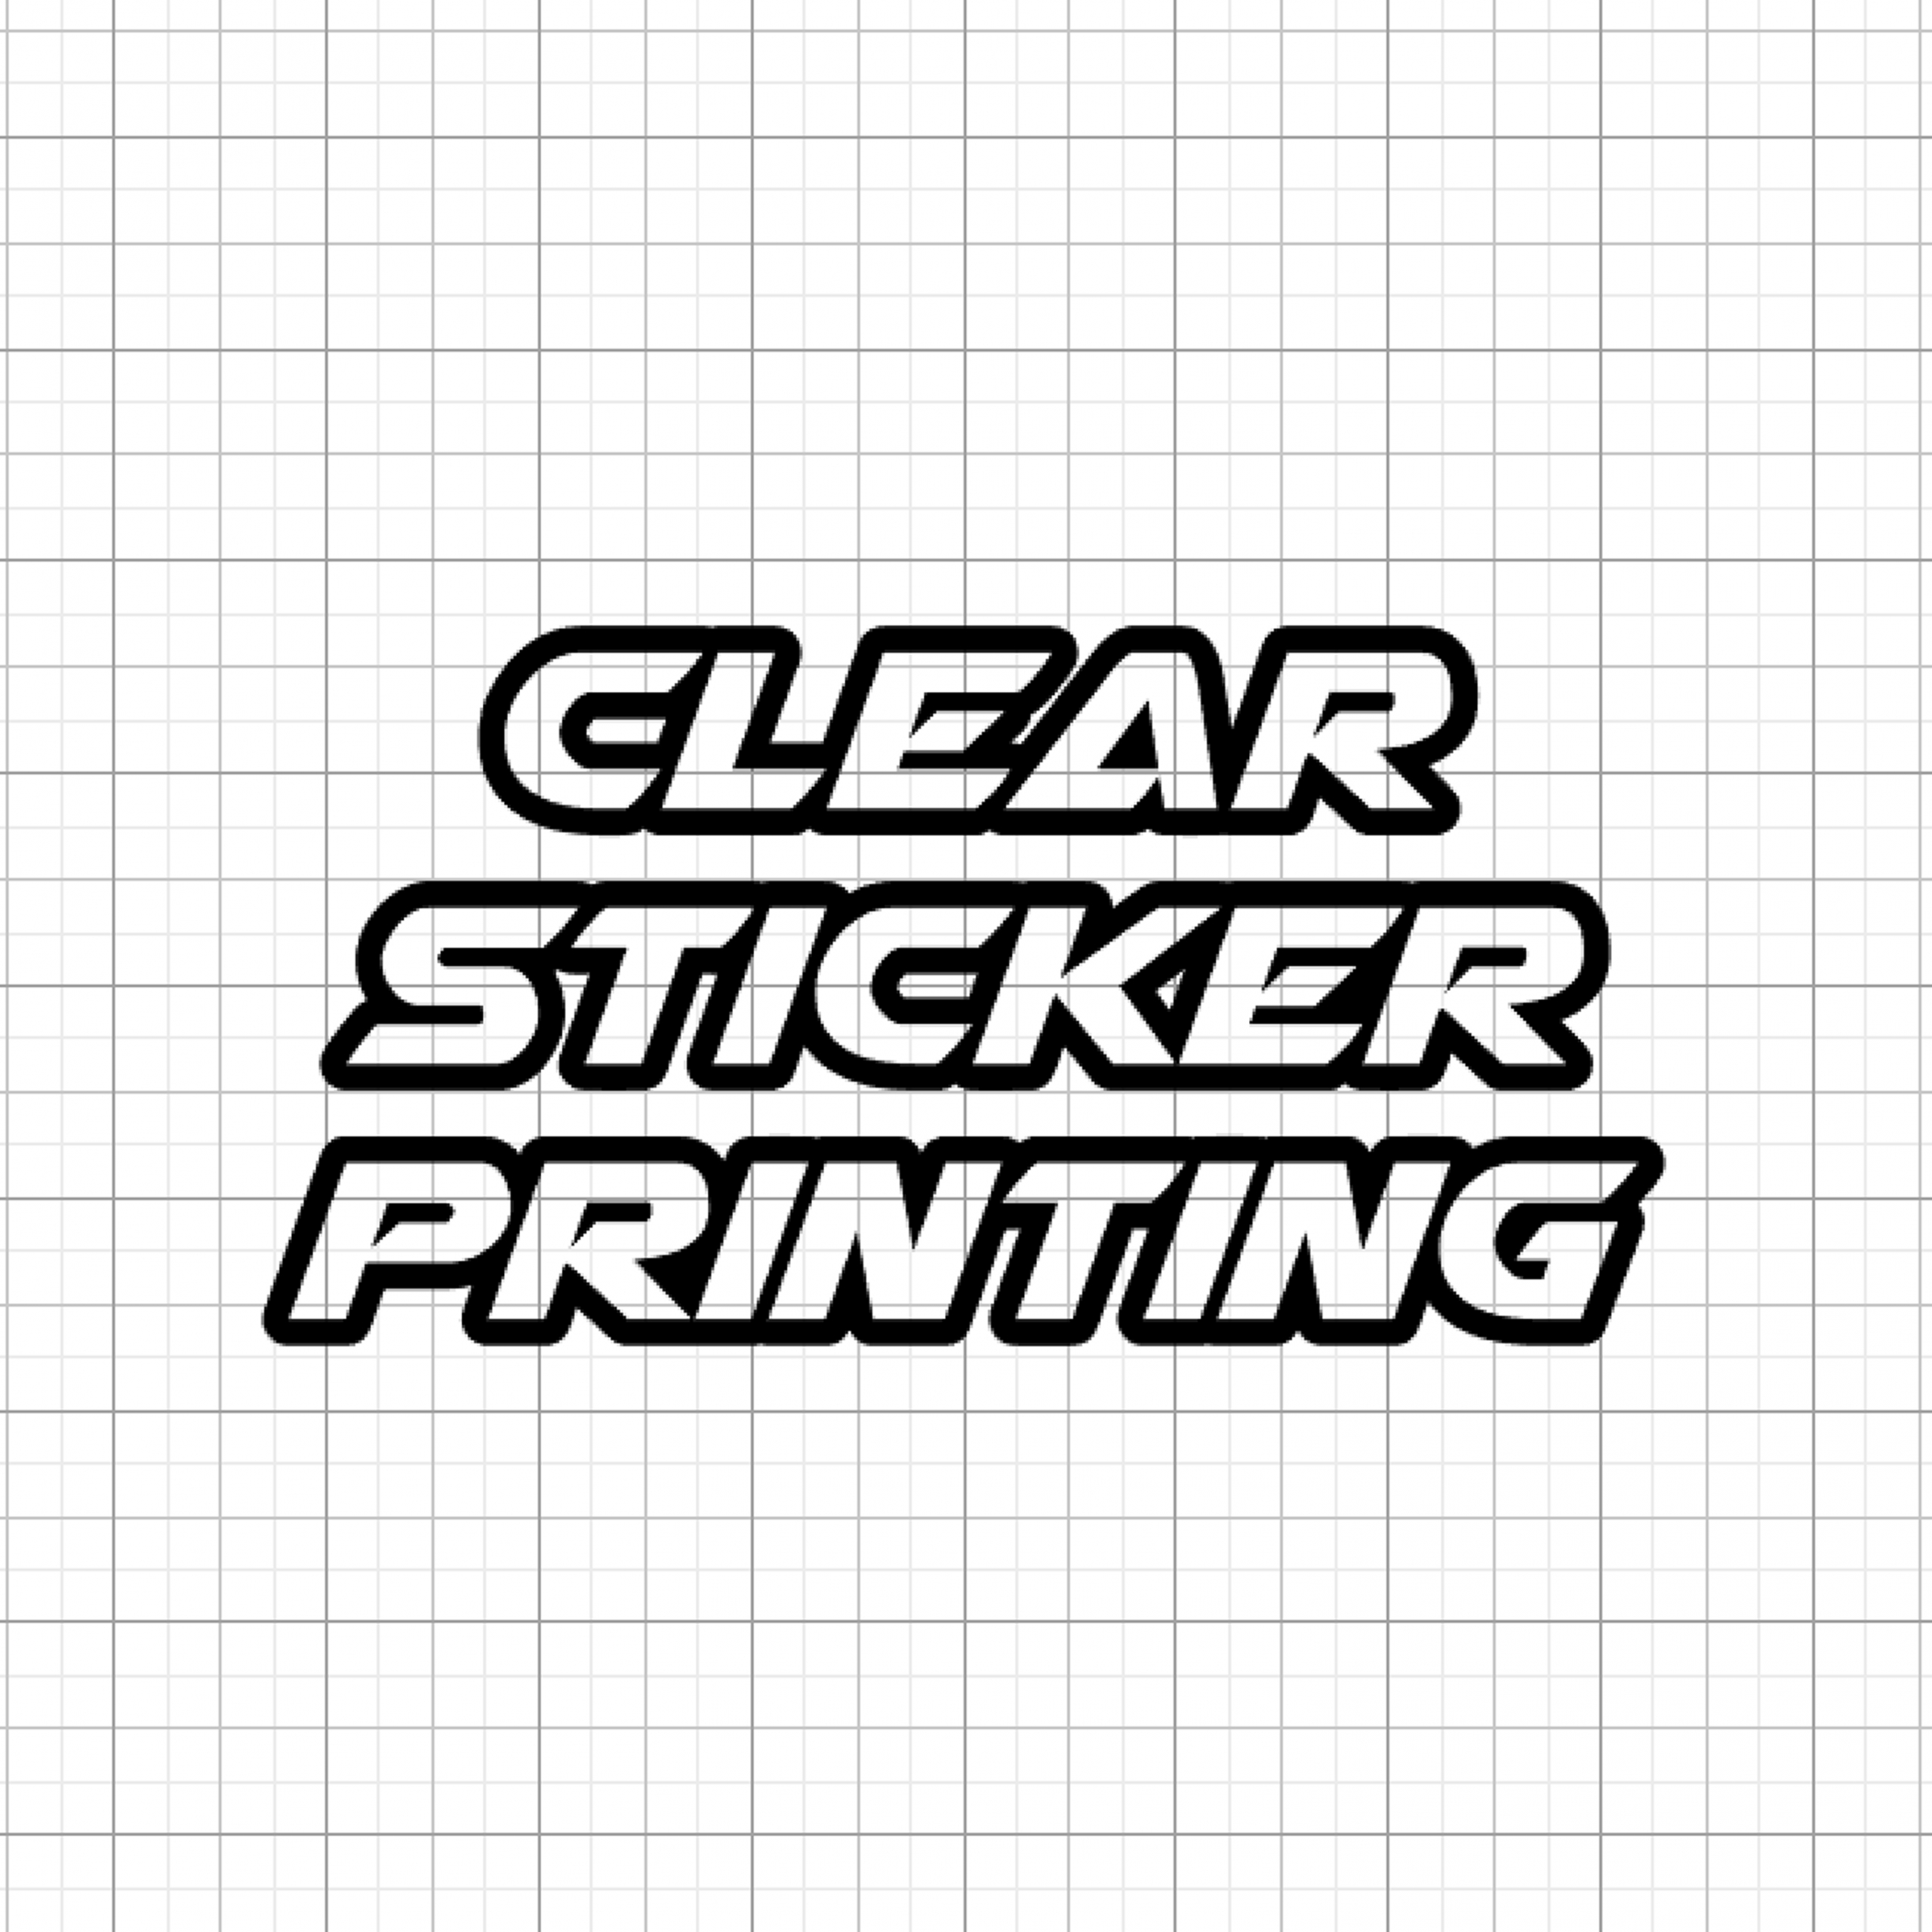 Clear Sticker Printing, Clear Stickers